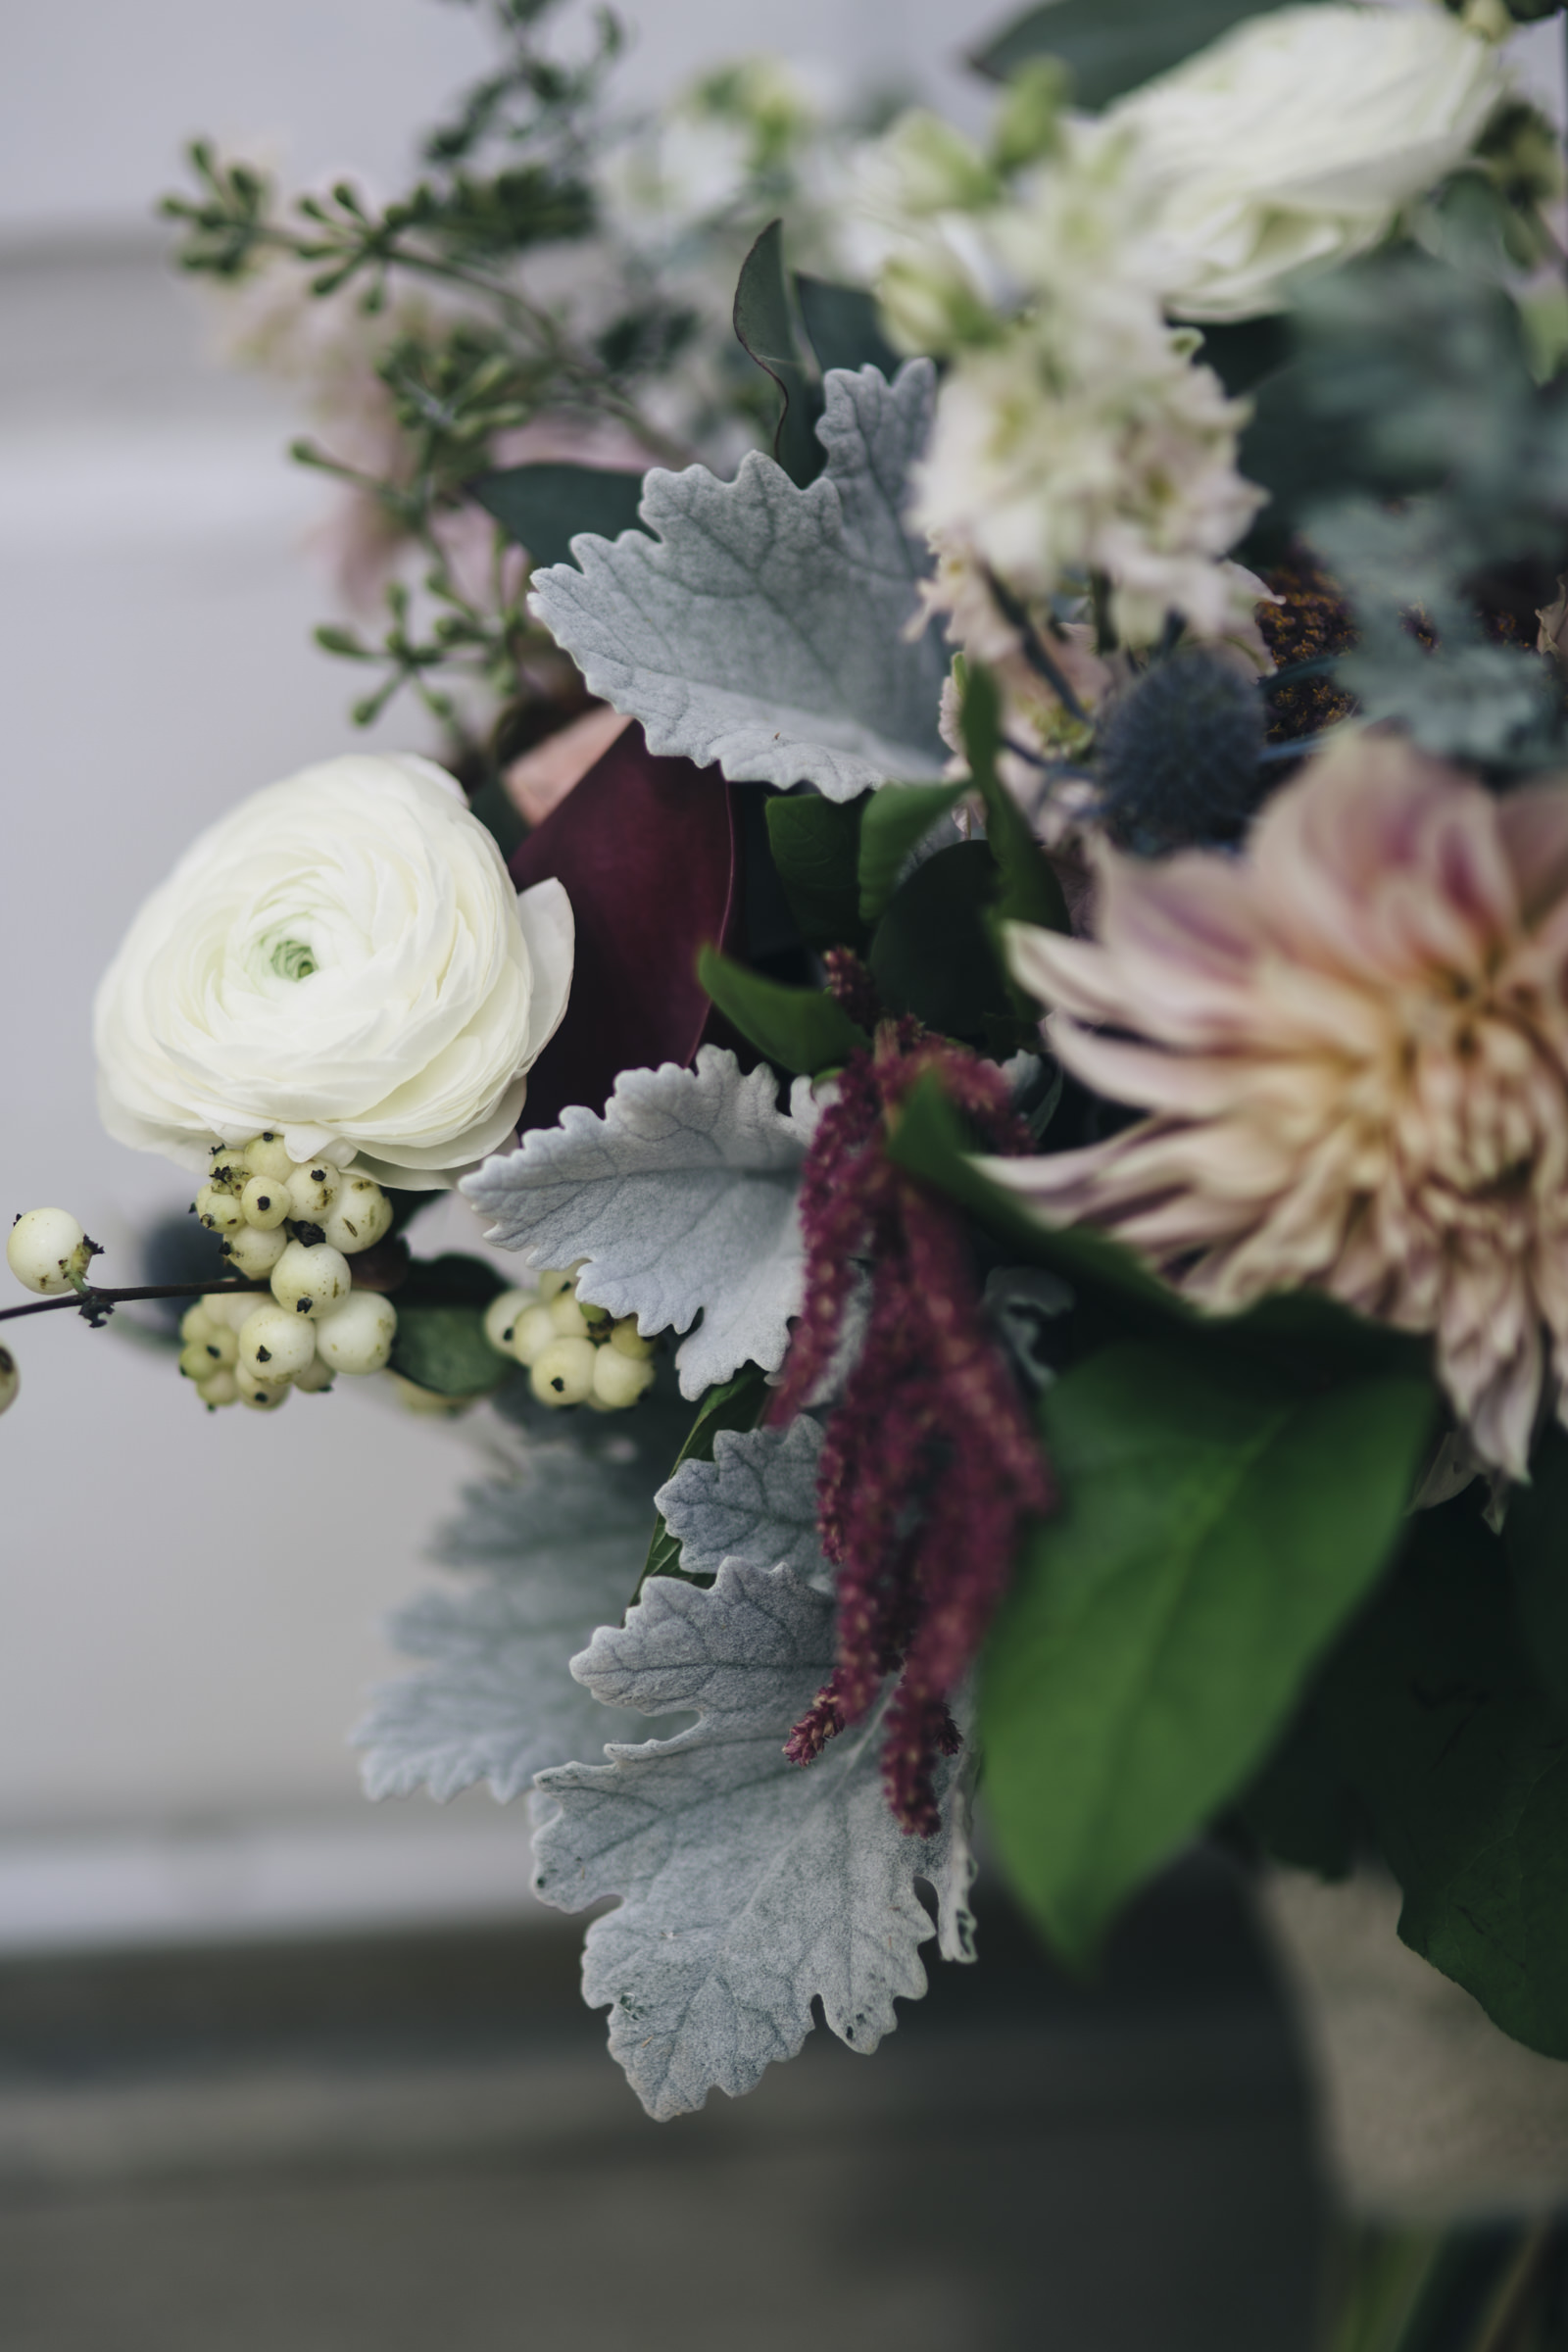 THe brides maroon and cream vintage influenced floral bouquet